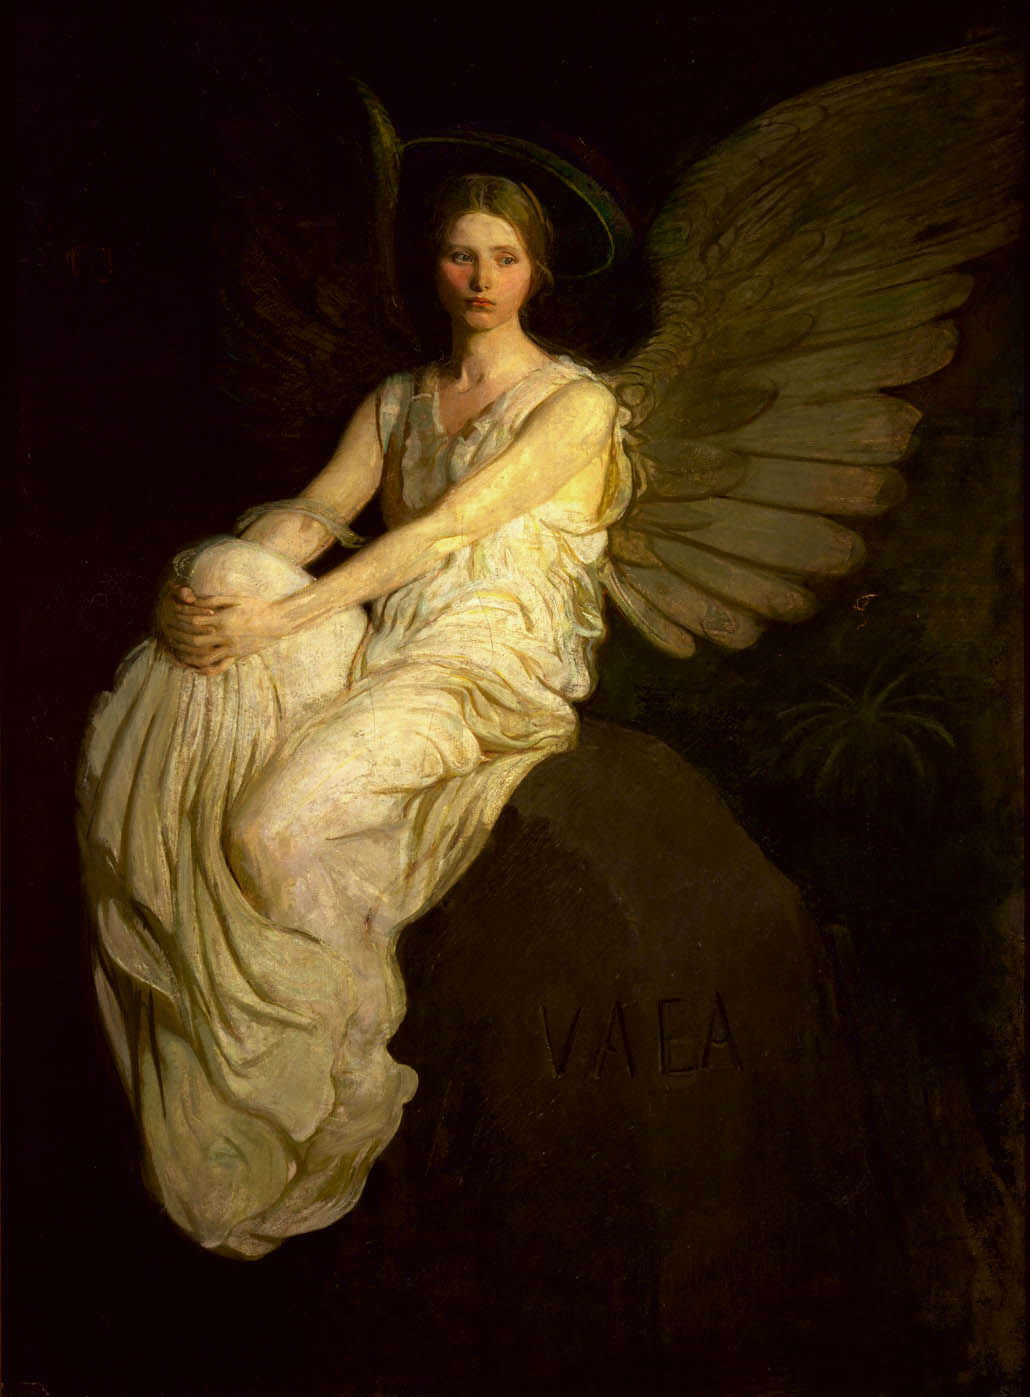 Abbott Handerson Thayer - Smithsonian